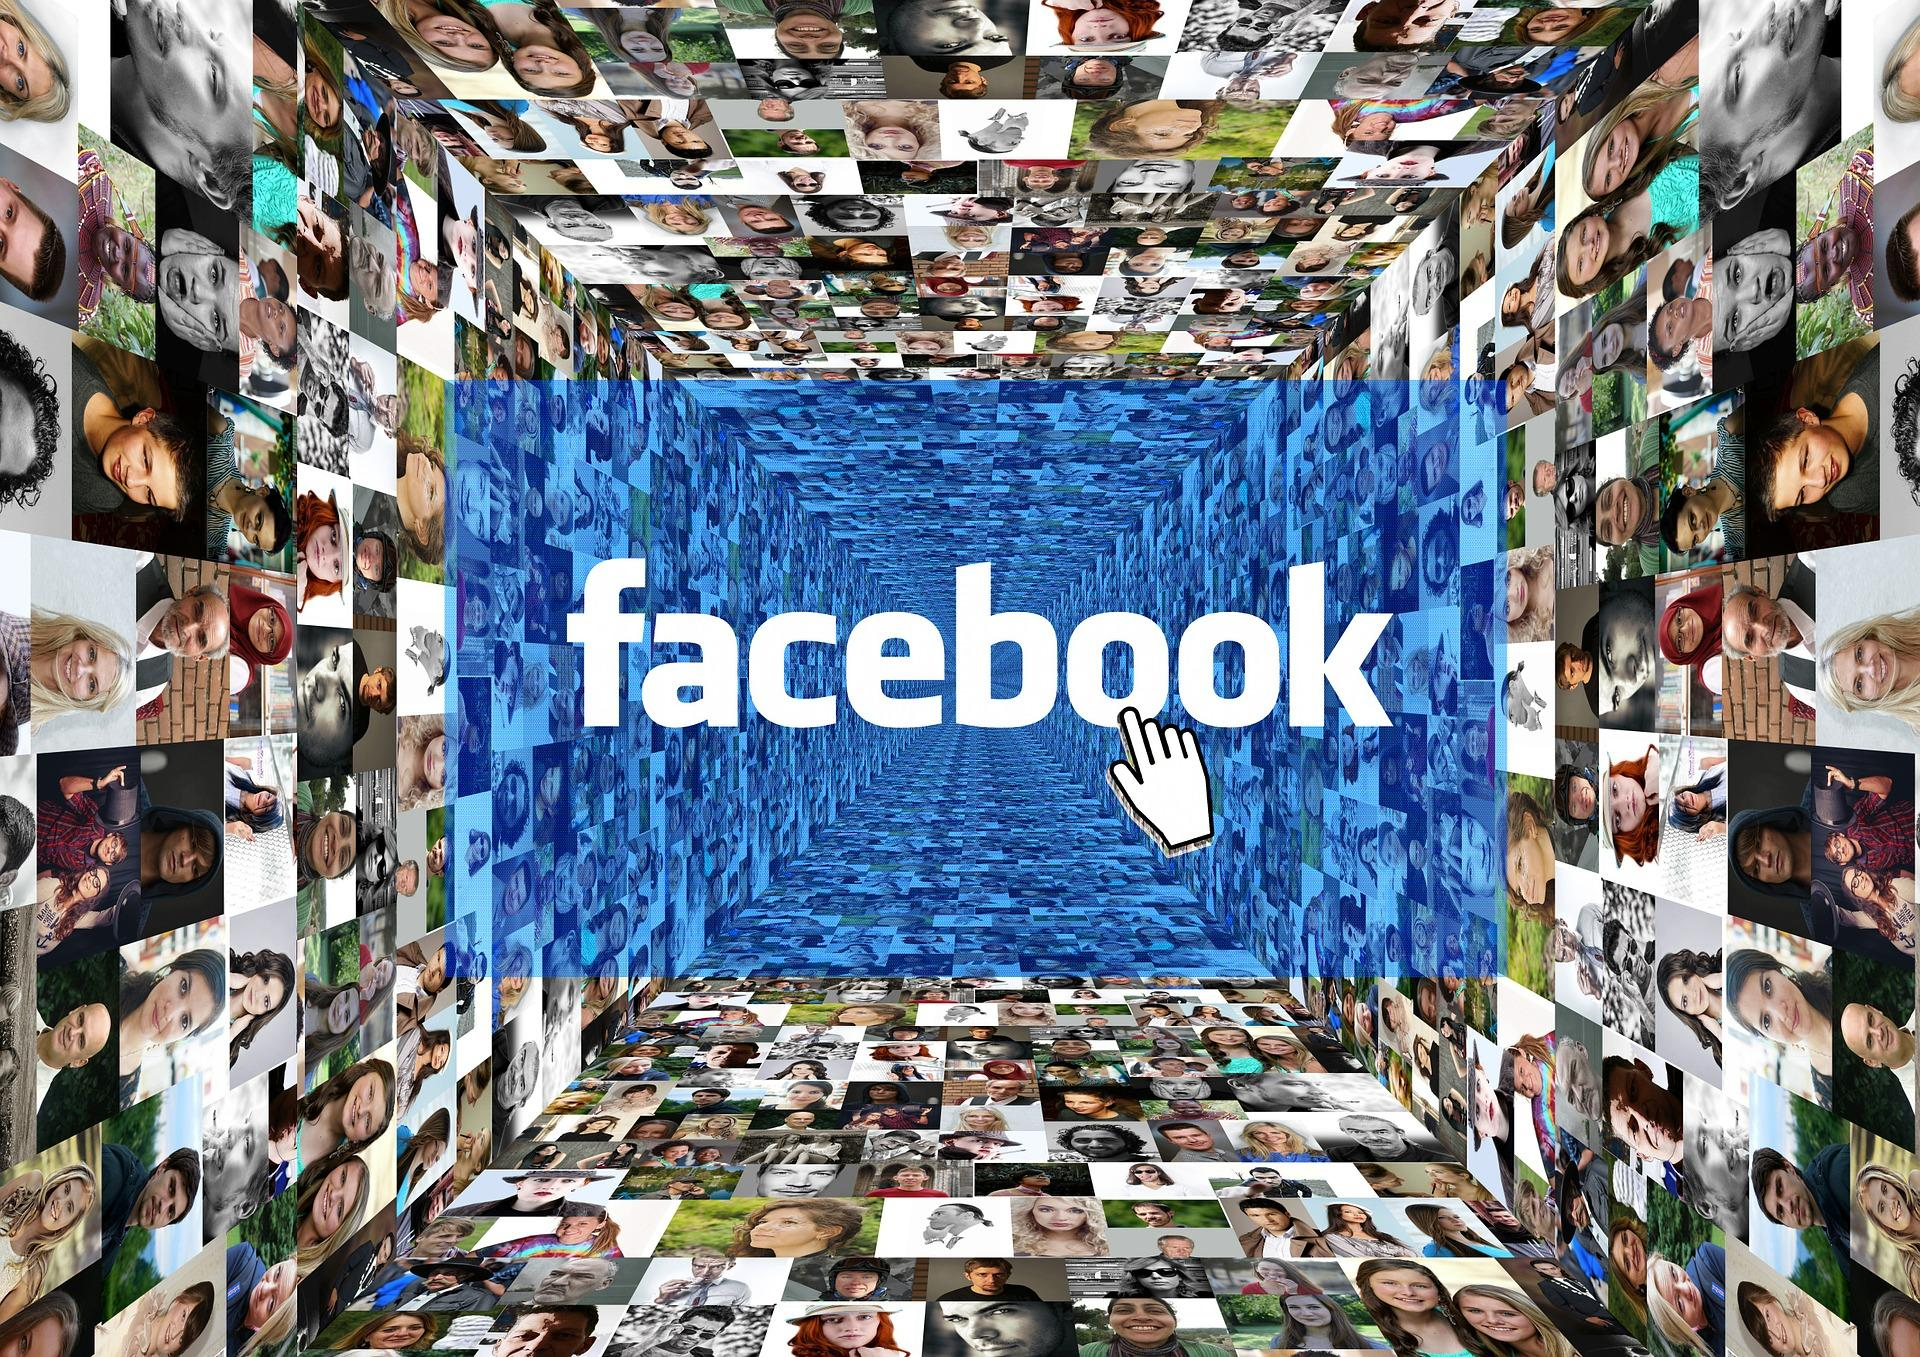 The Top Facebook Tips and Tricks - Image 1